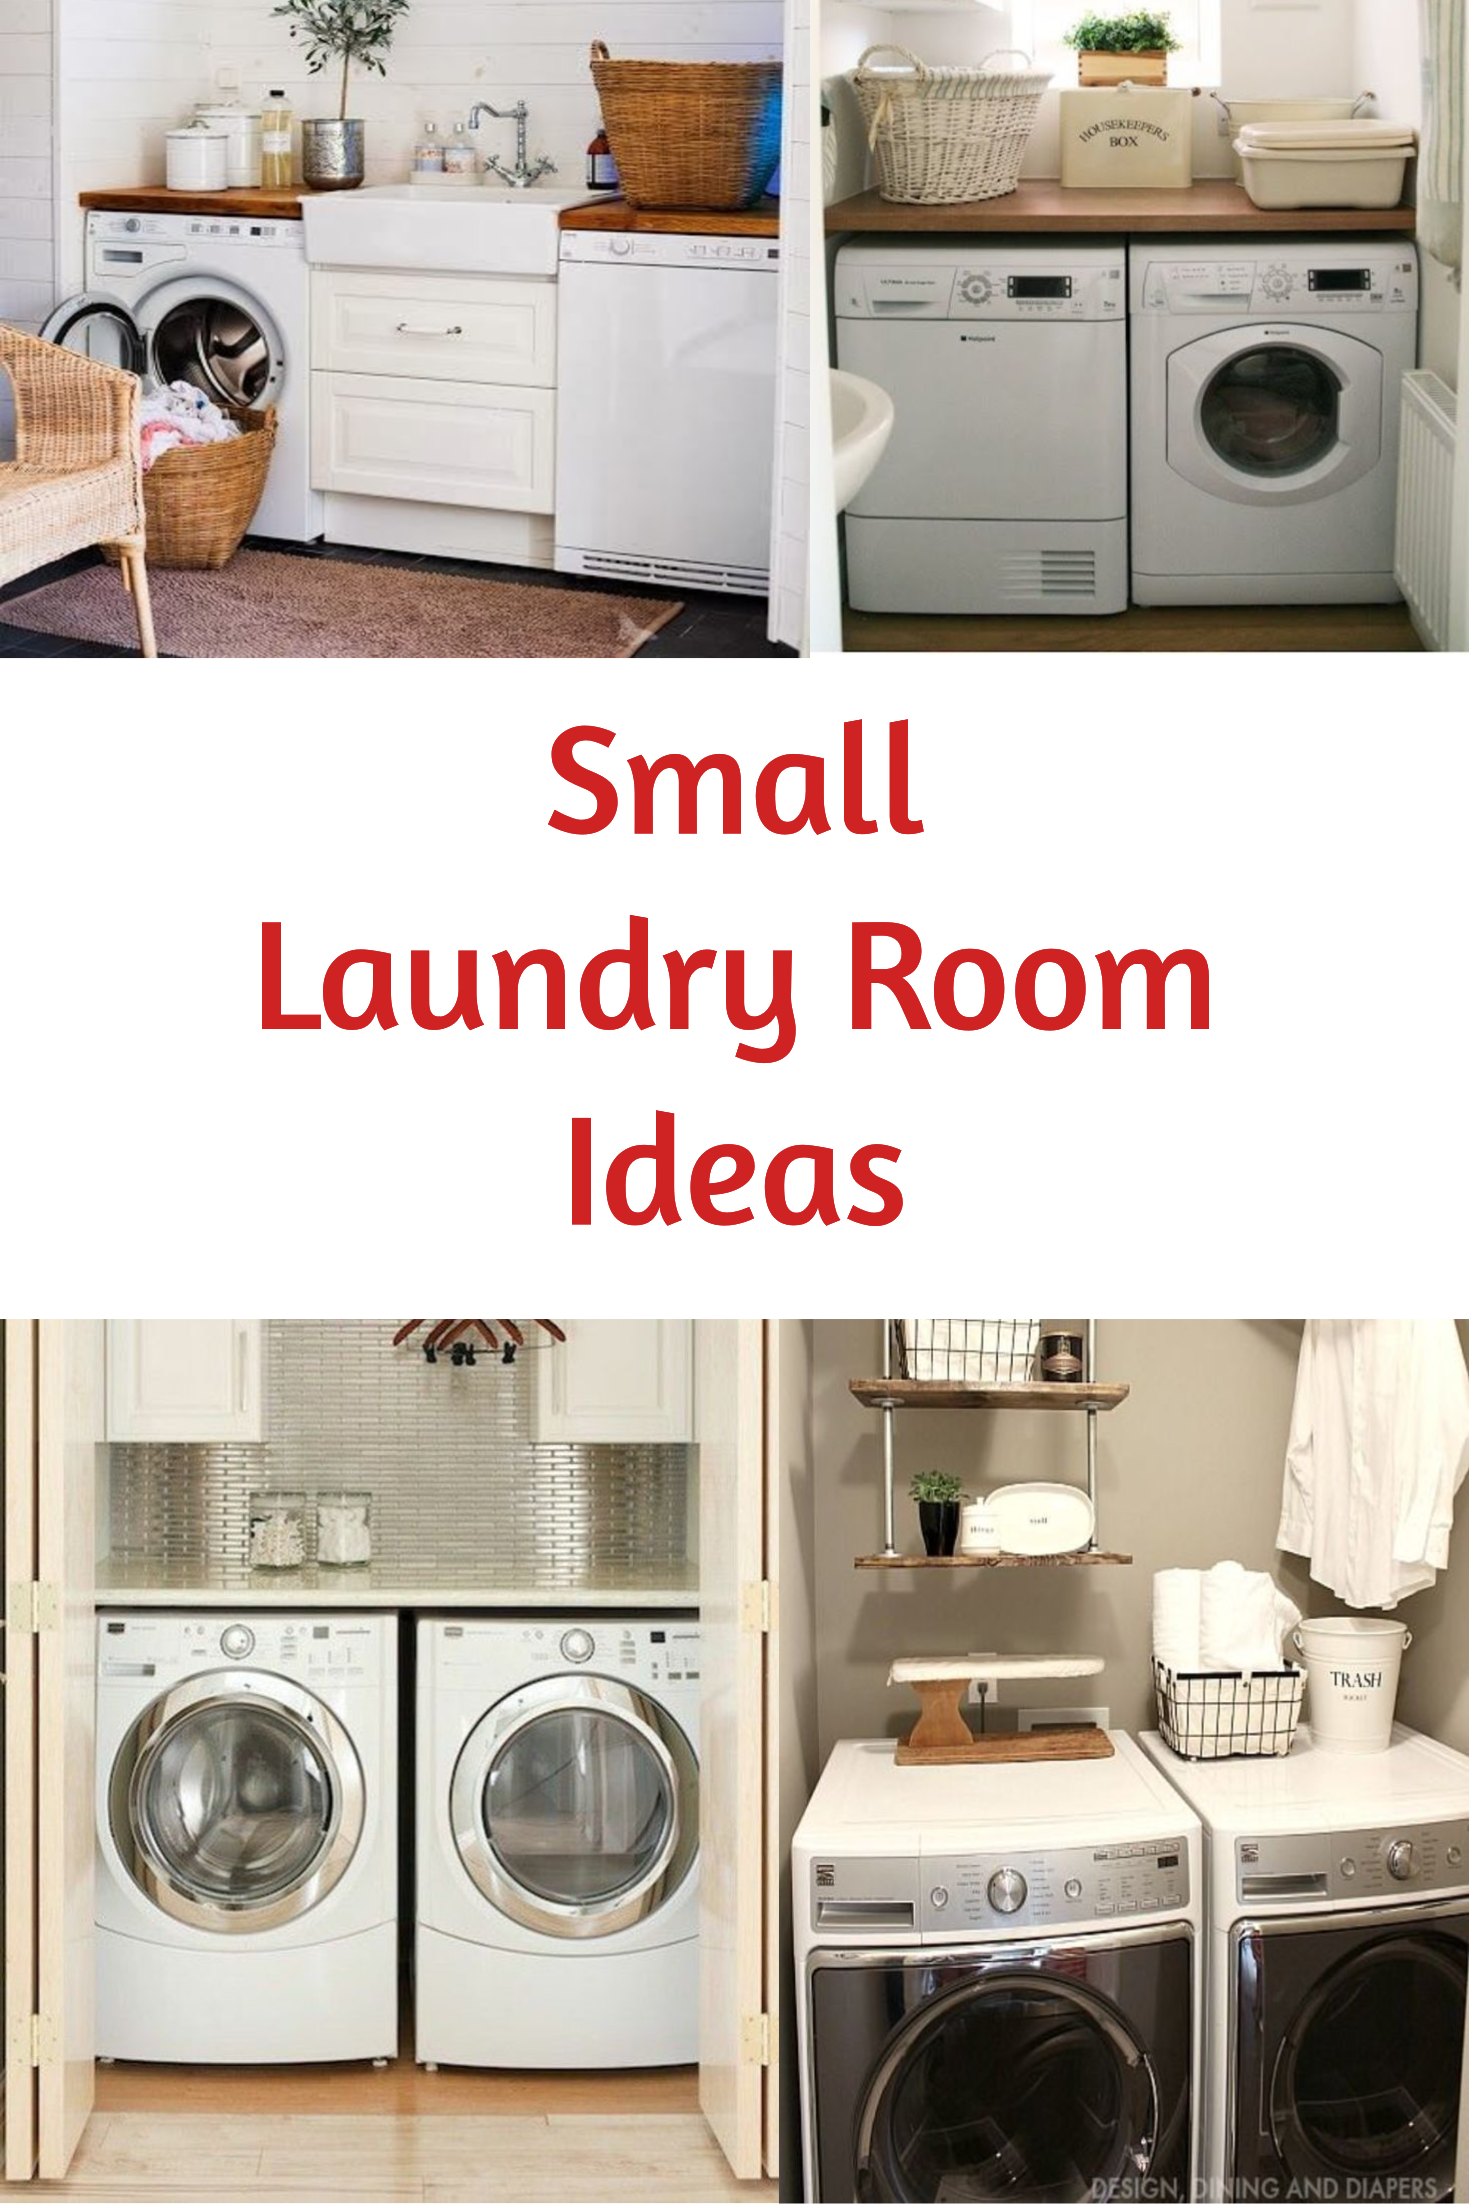 small laundry room ideas space saving diy creative ideas for tiny laundry rooms organizing. Black Bedroom Furniture Sets. Home Design Ideas